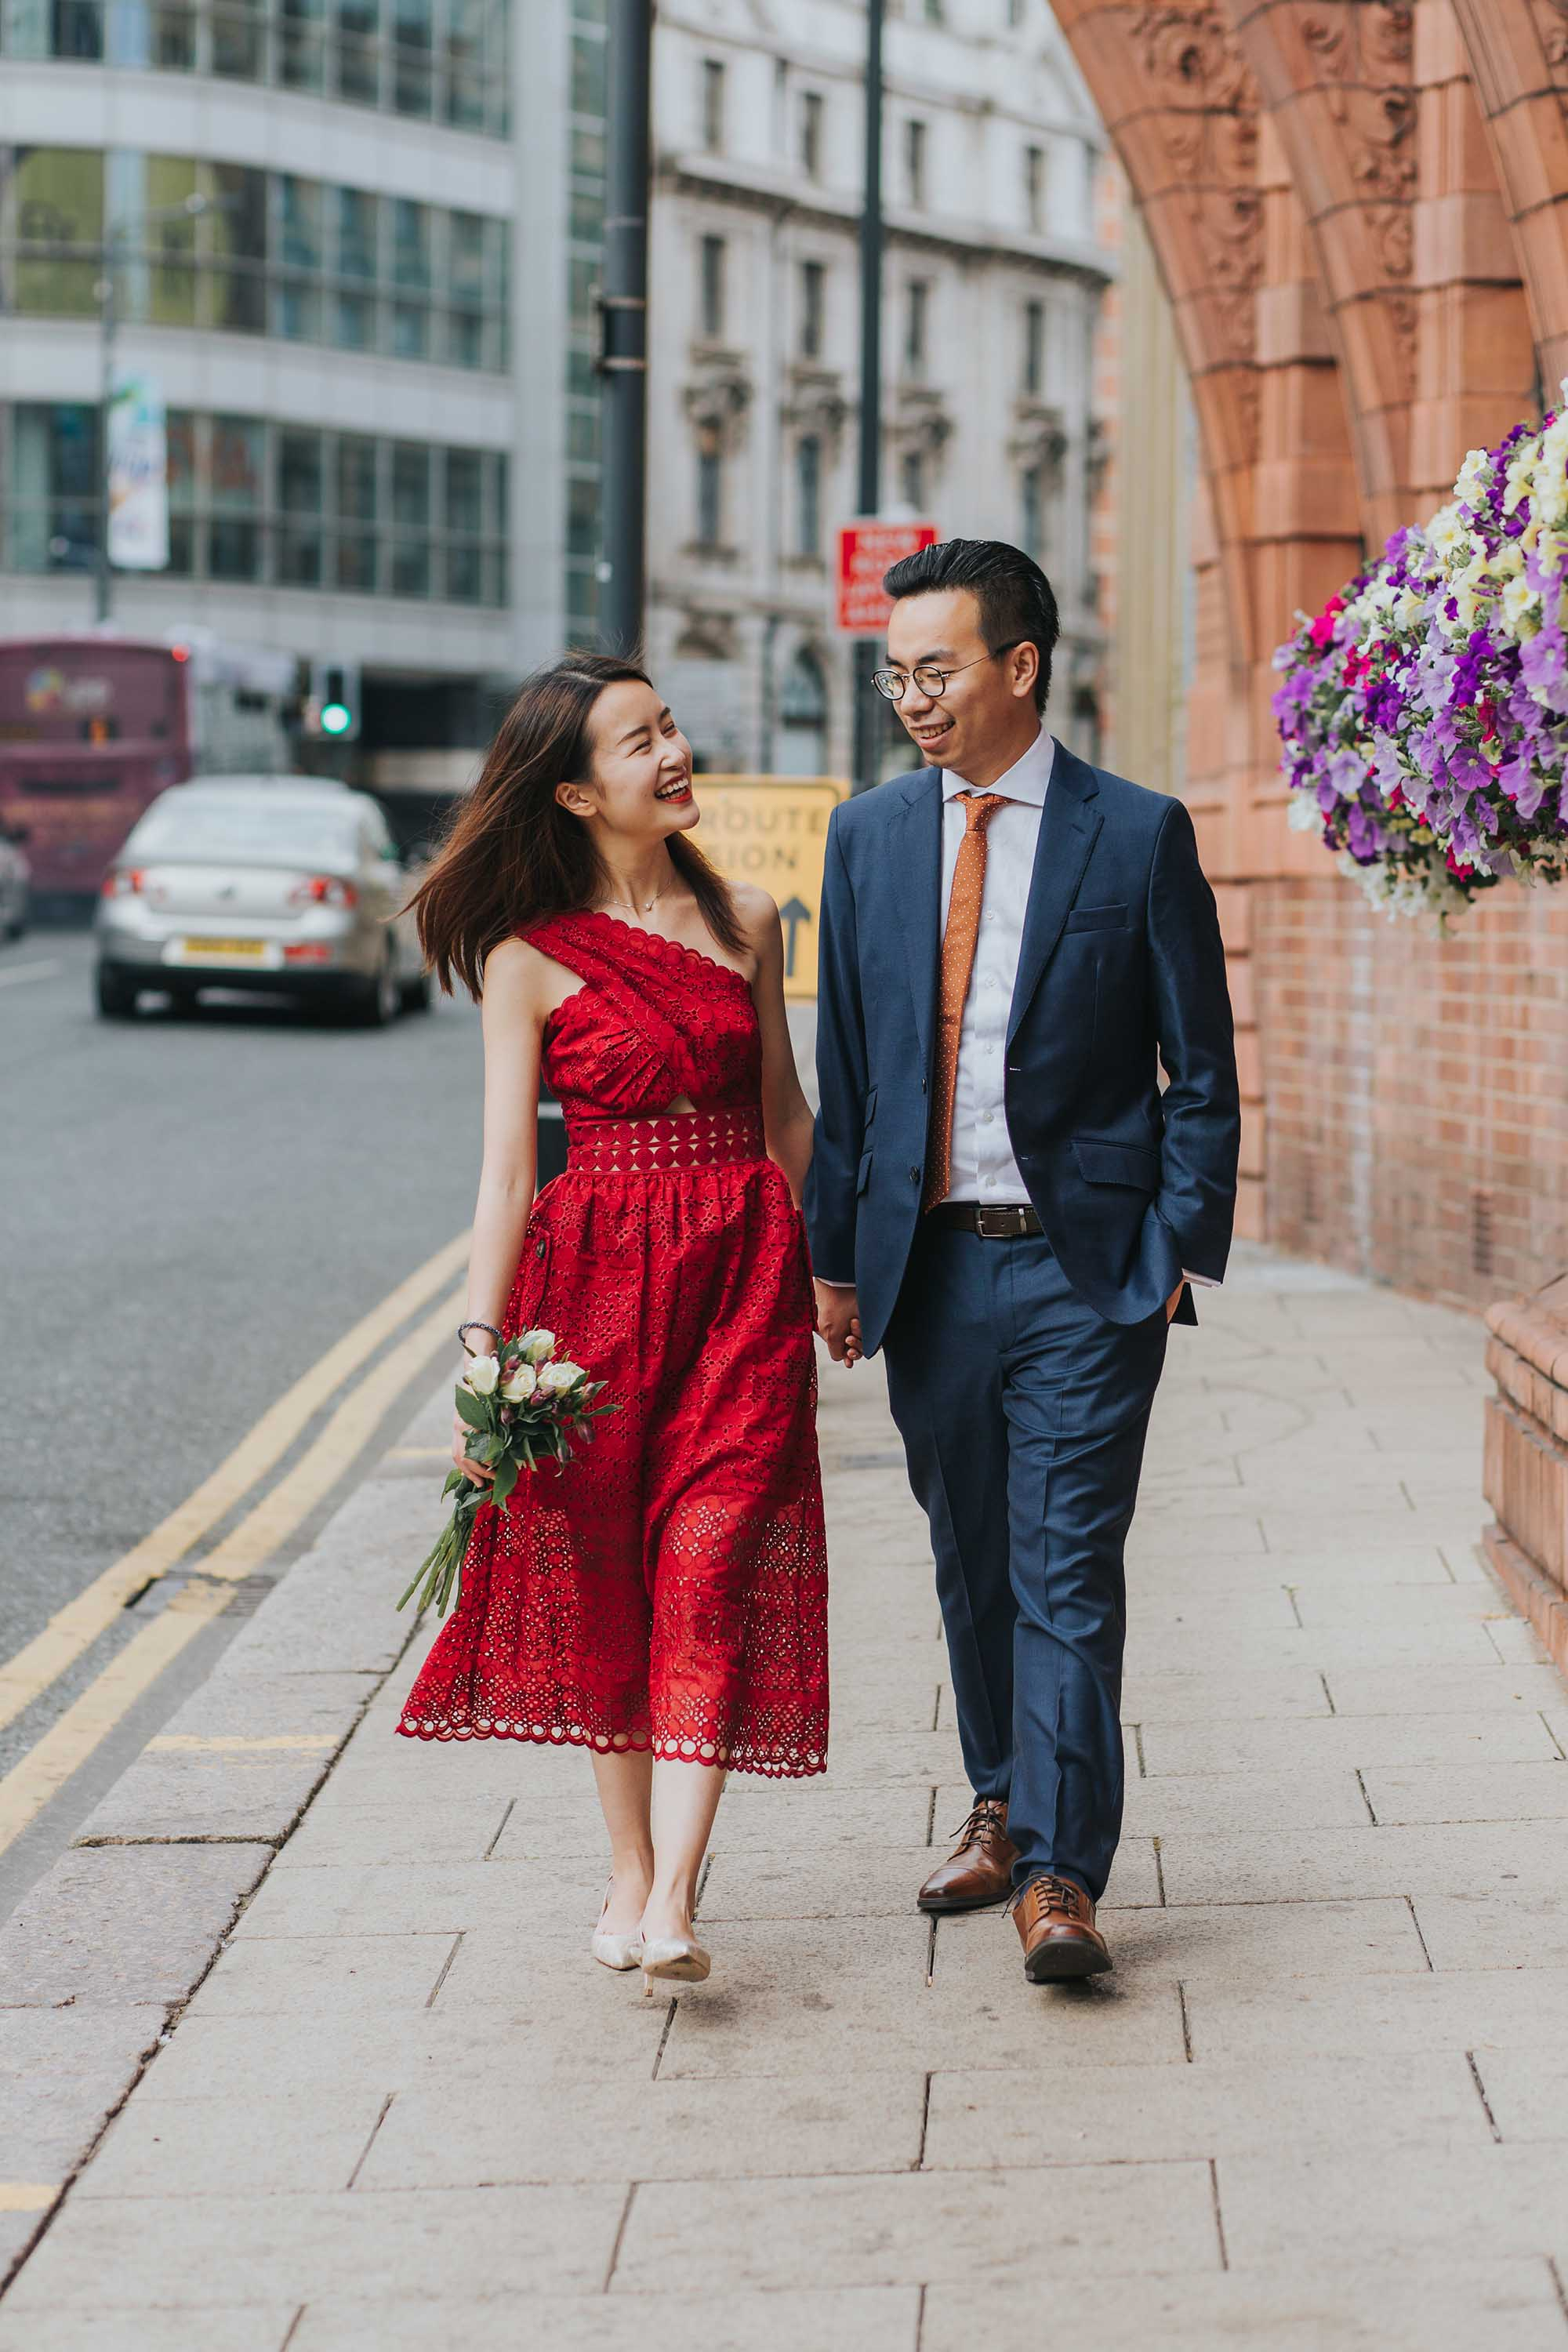 Leeds Chinese wedding photographer